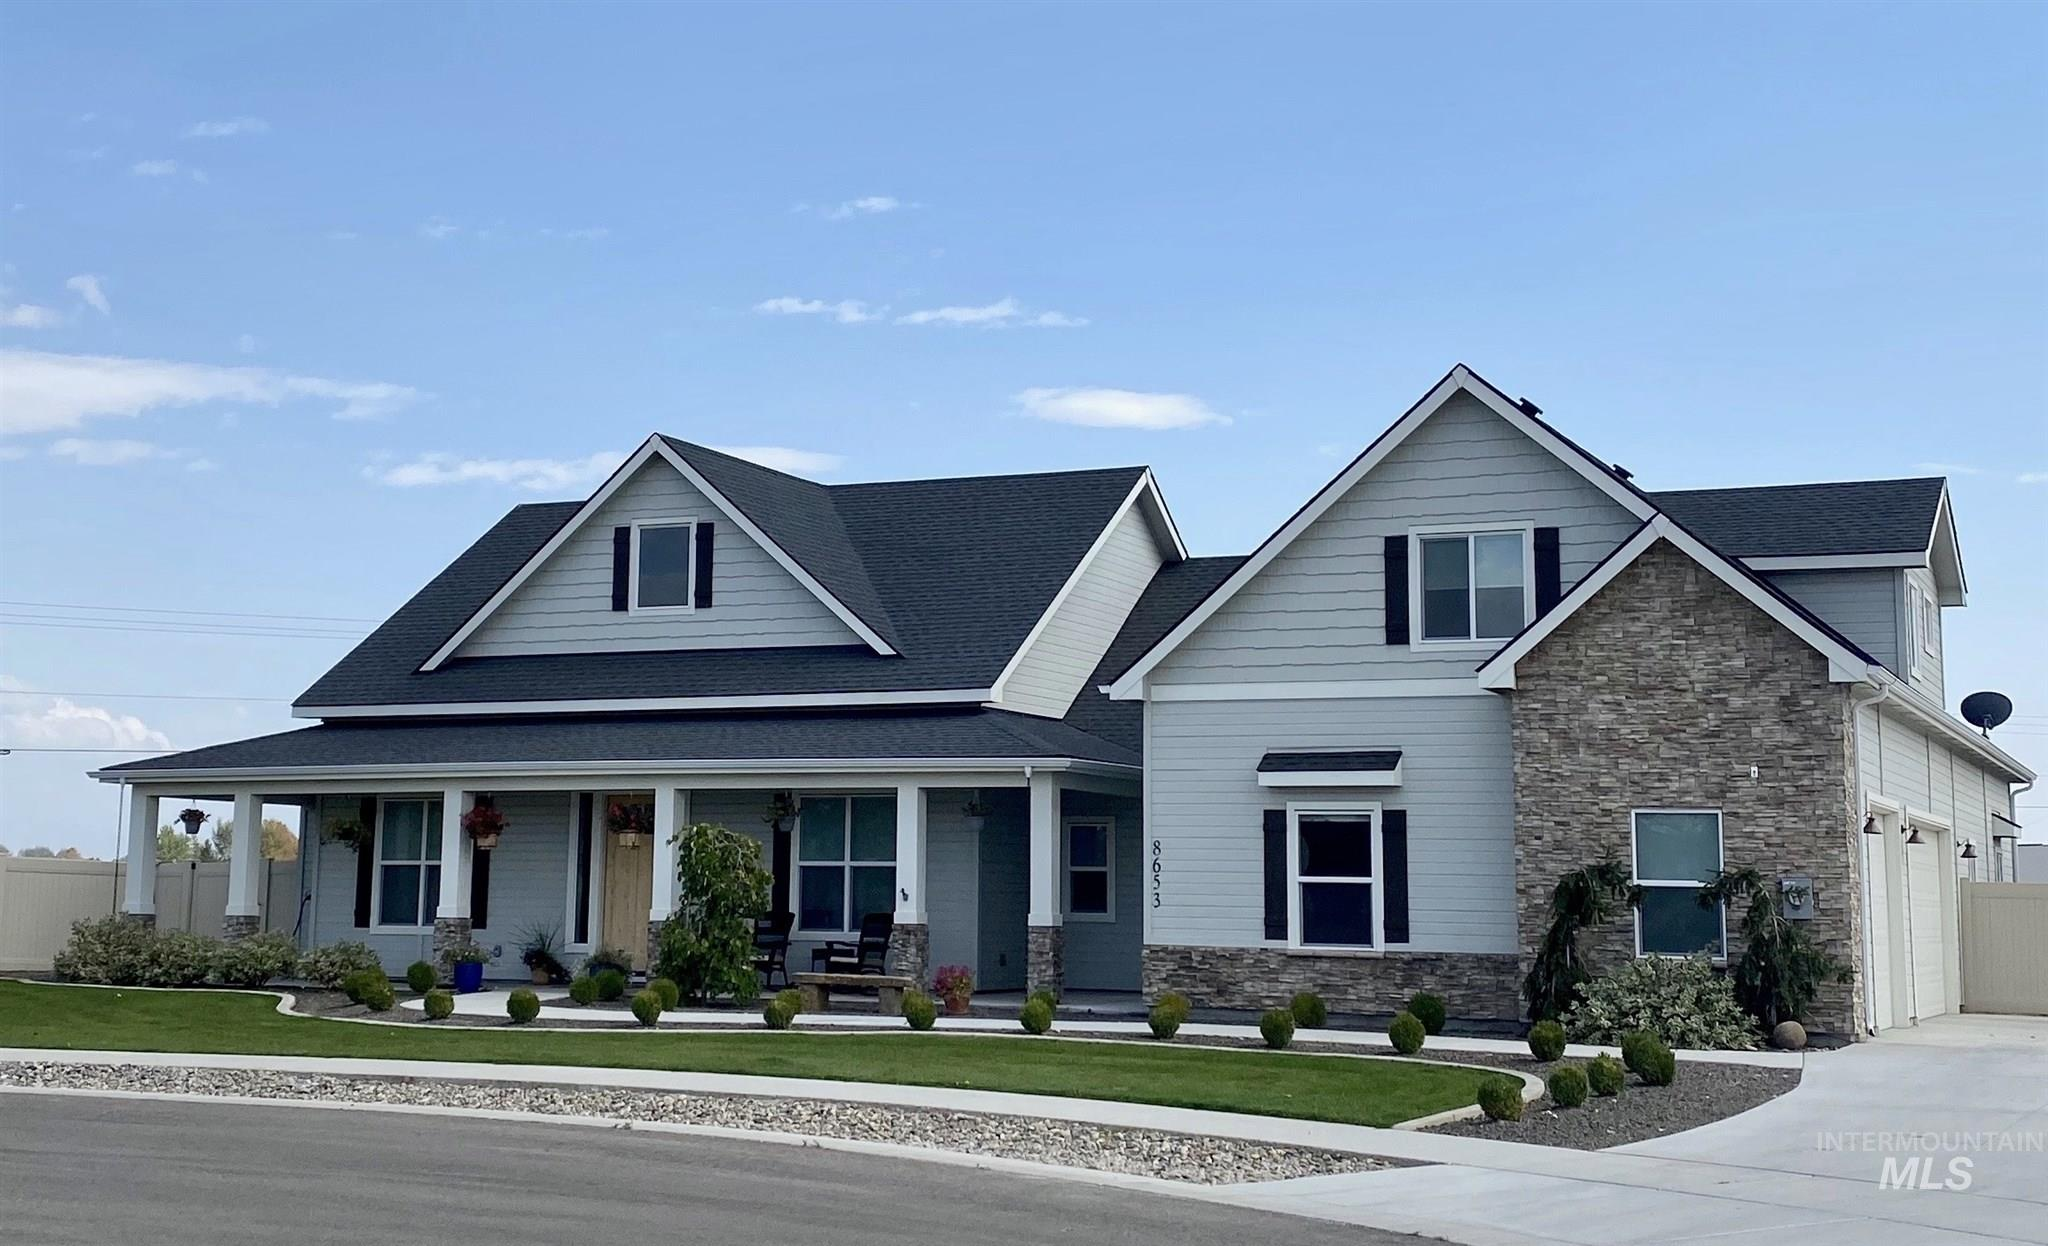 8653 Legacy Ct., Middleton, Idaho 83644, 5 Bedrooms, 3 Bathrooms, Residential For Sale, Price $615,900, 98781464